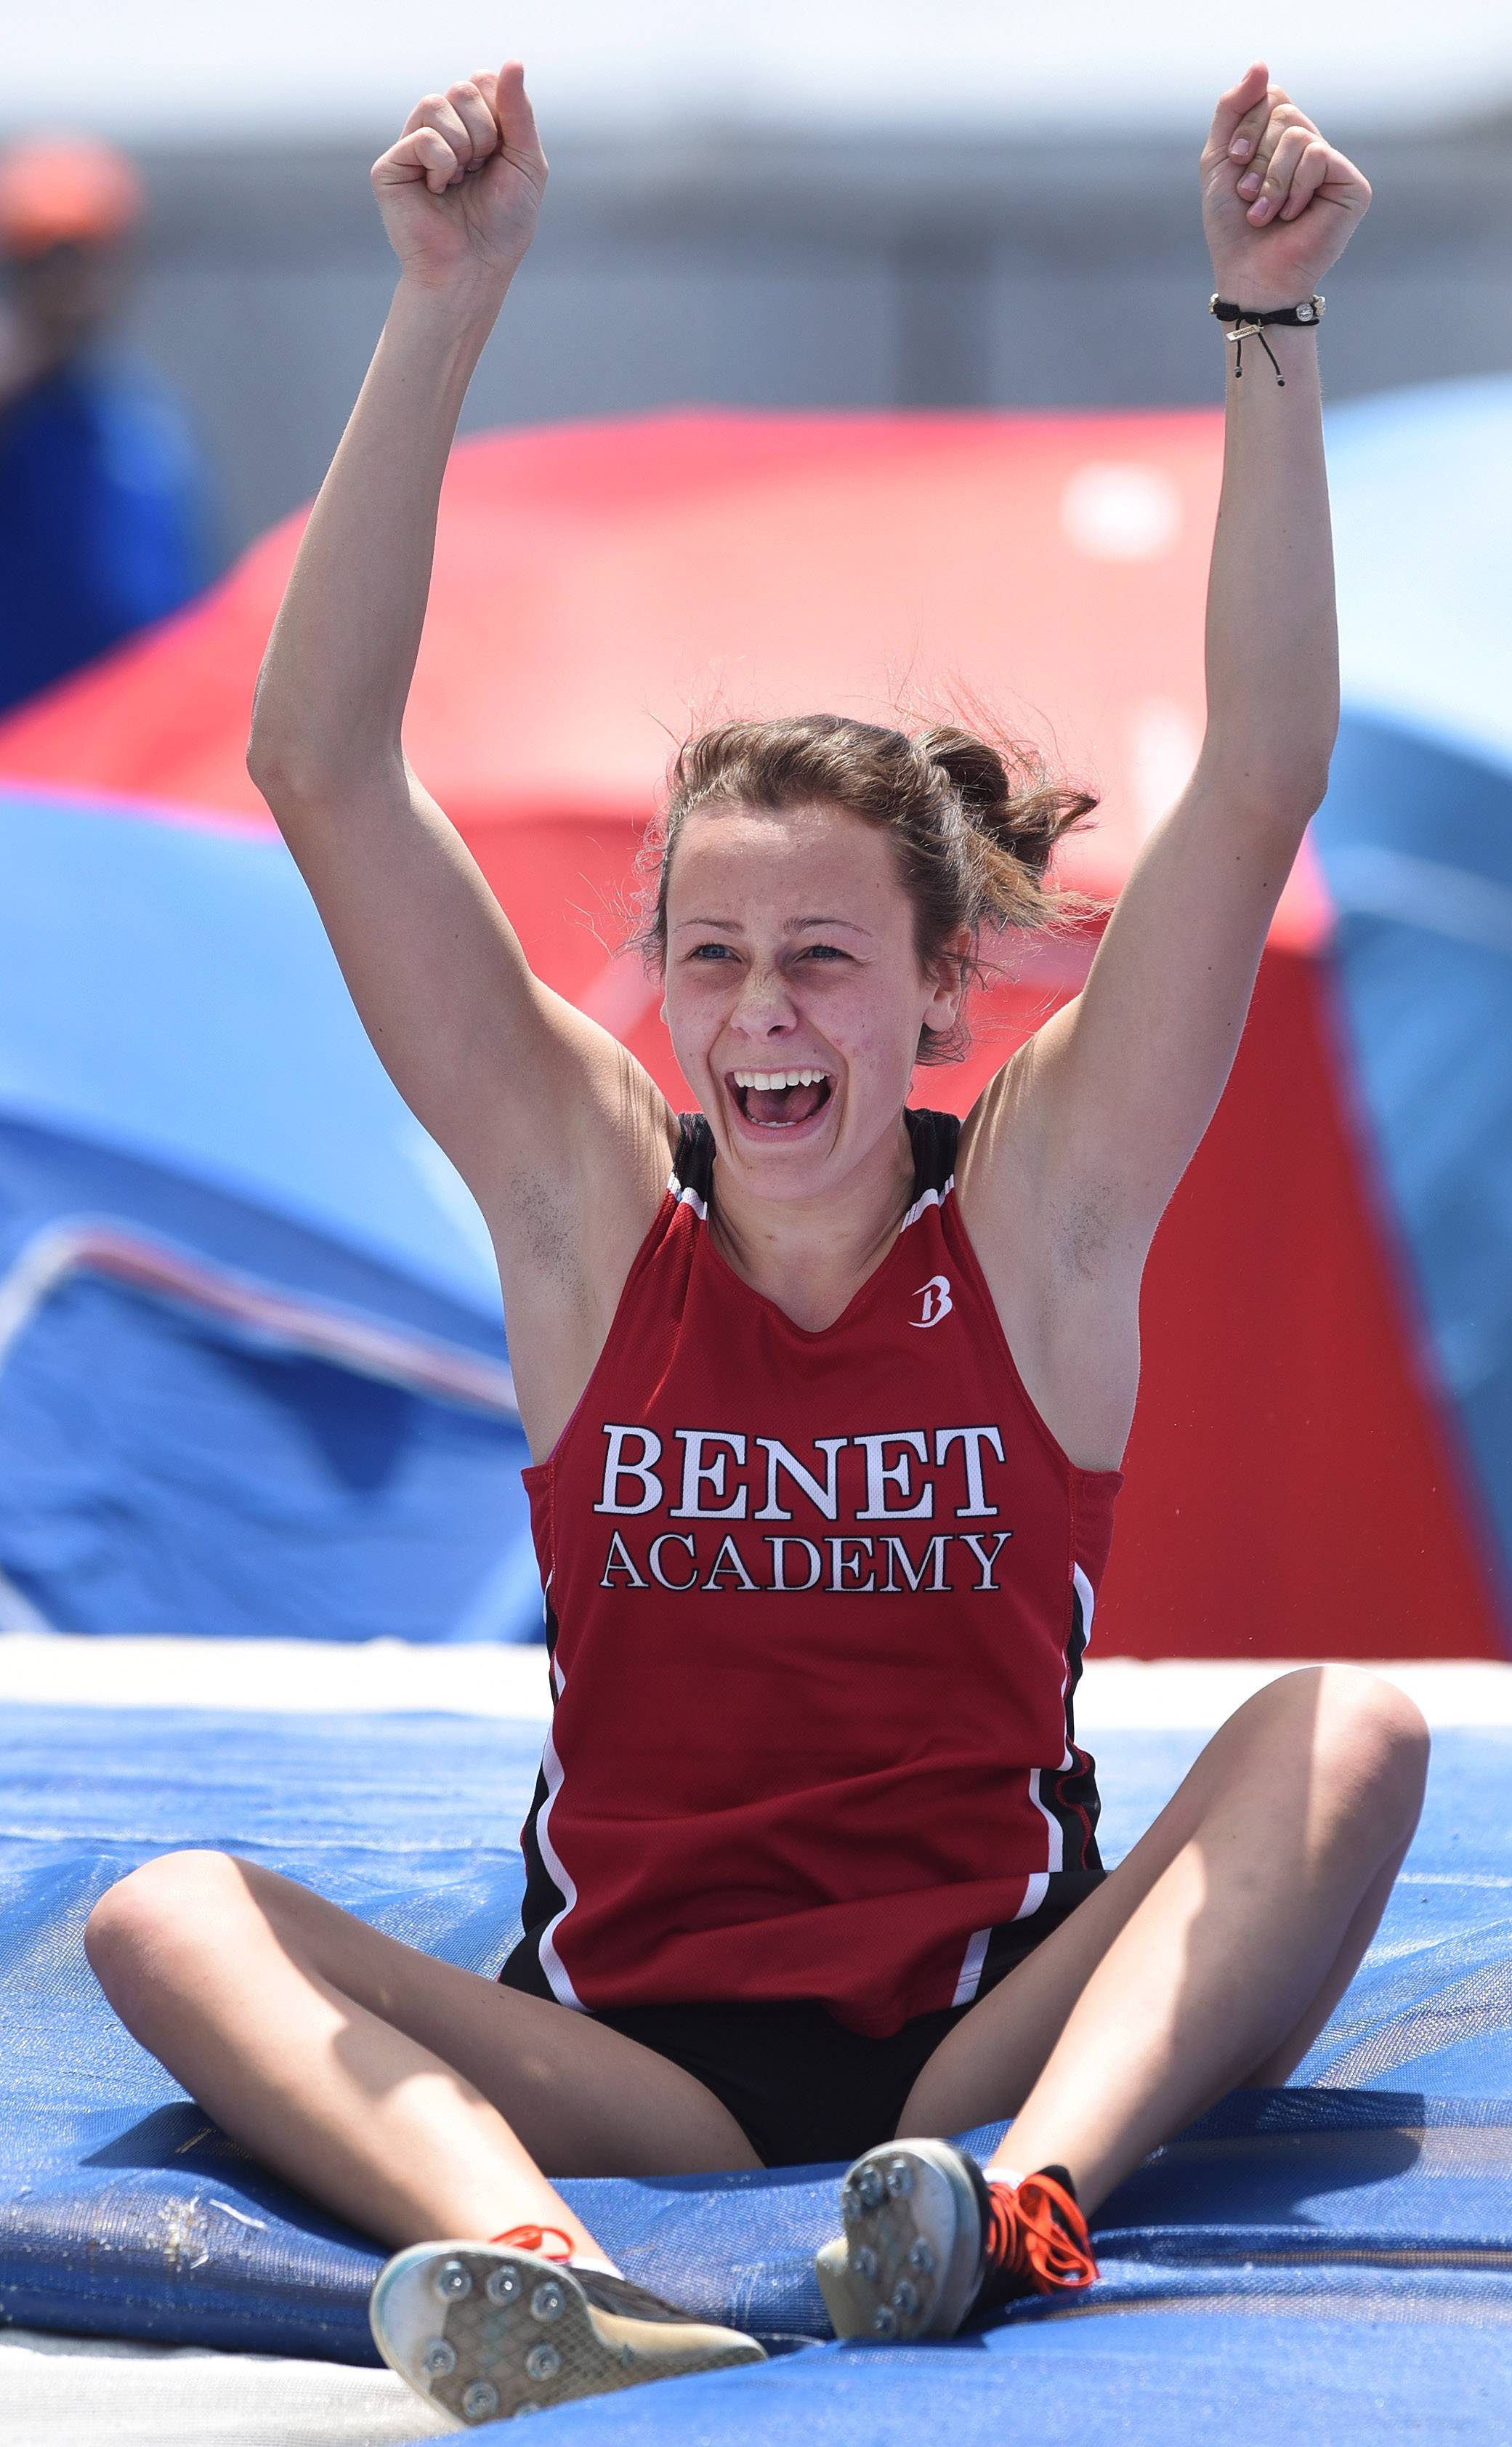 Ali Munson of Benet Academy celebrates as she wins the Class 2A state title in pole vault during the IHSA girls state track finals in Charleston Saturday